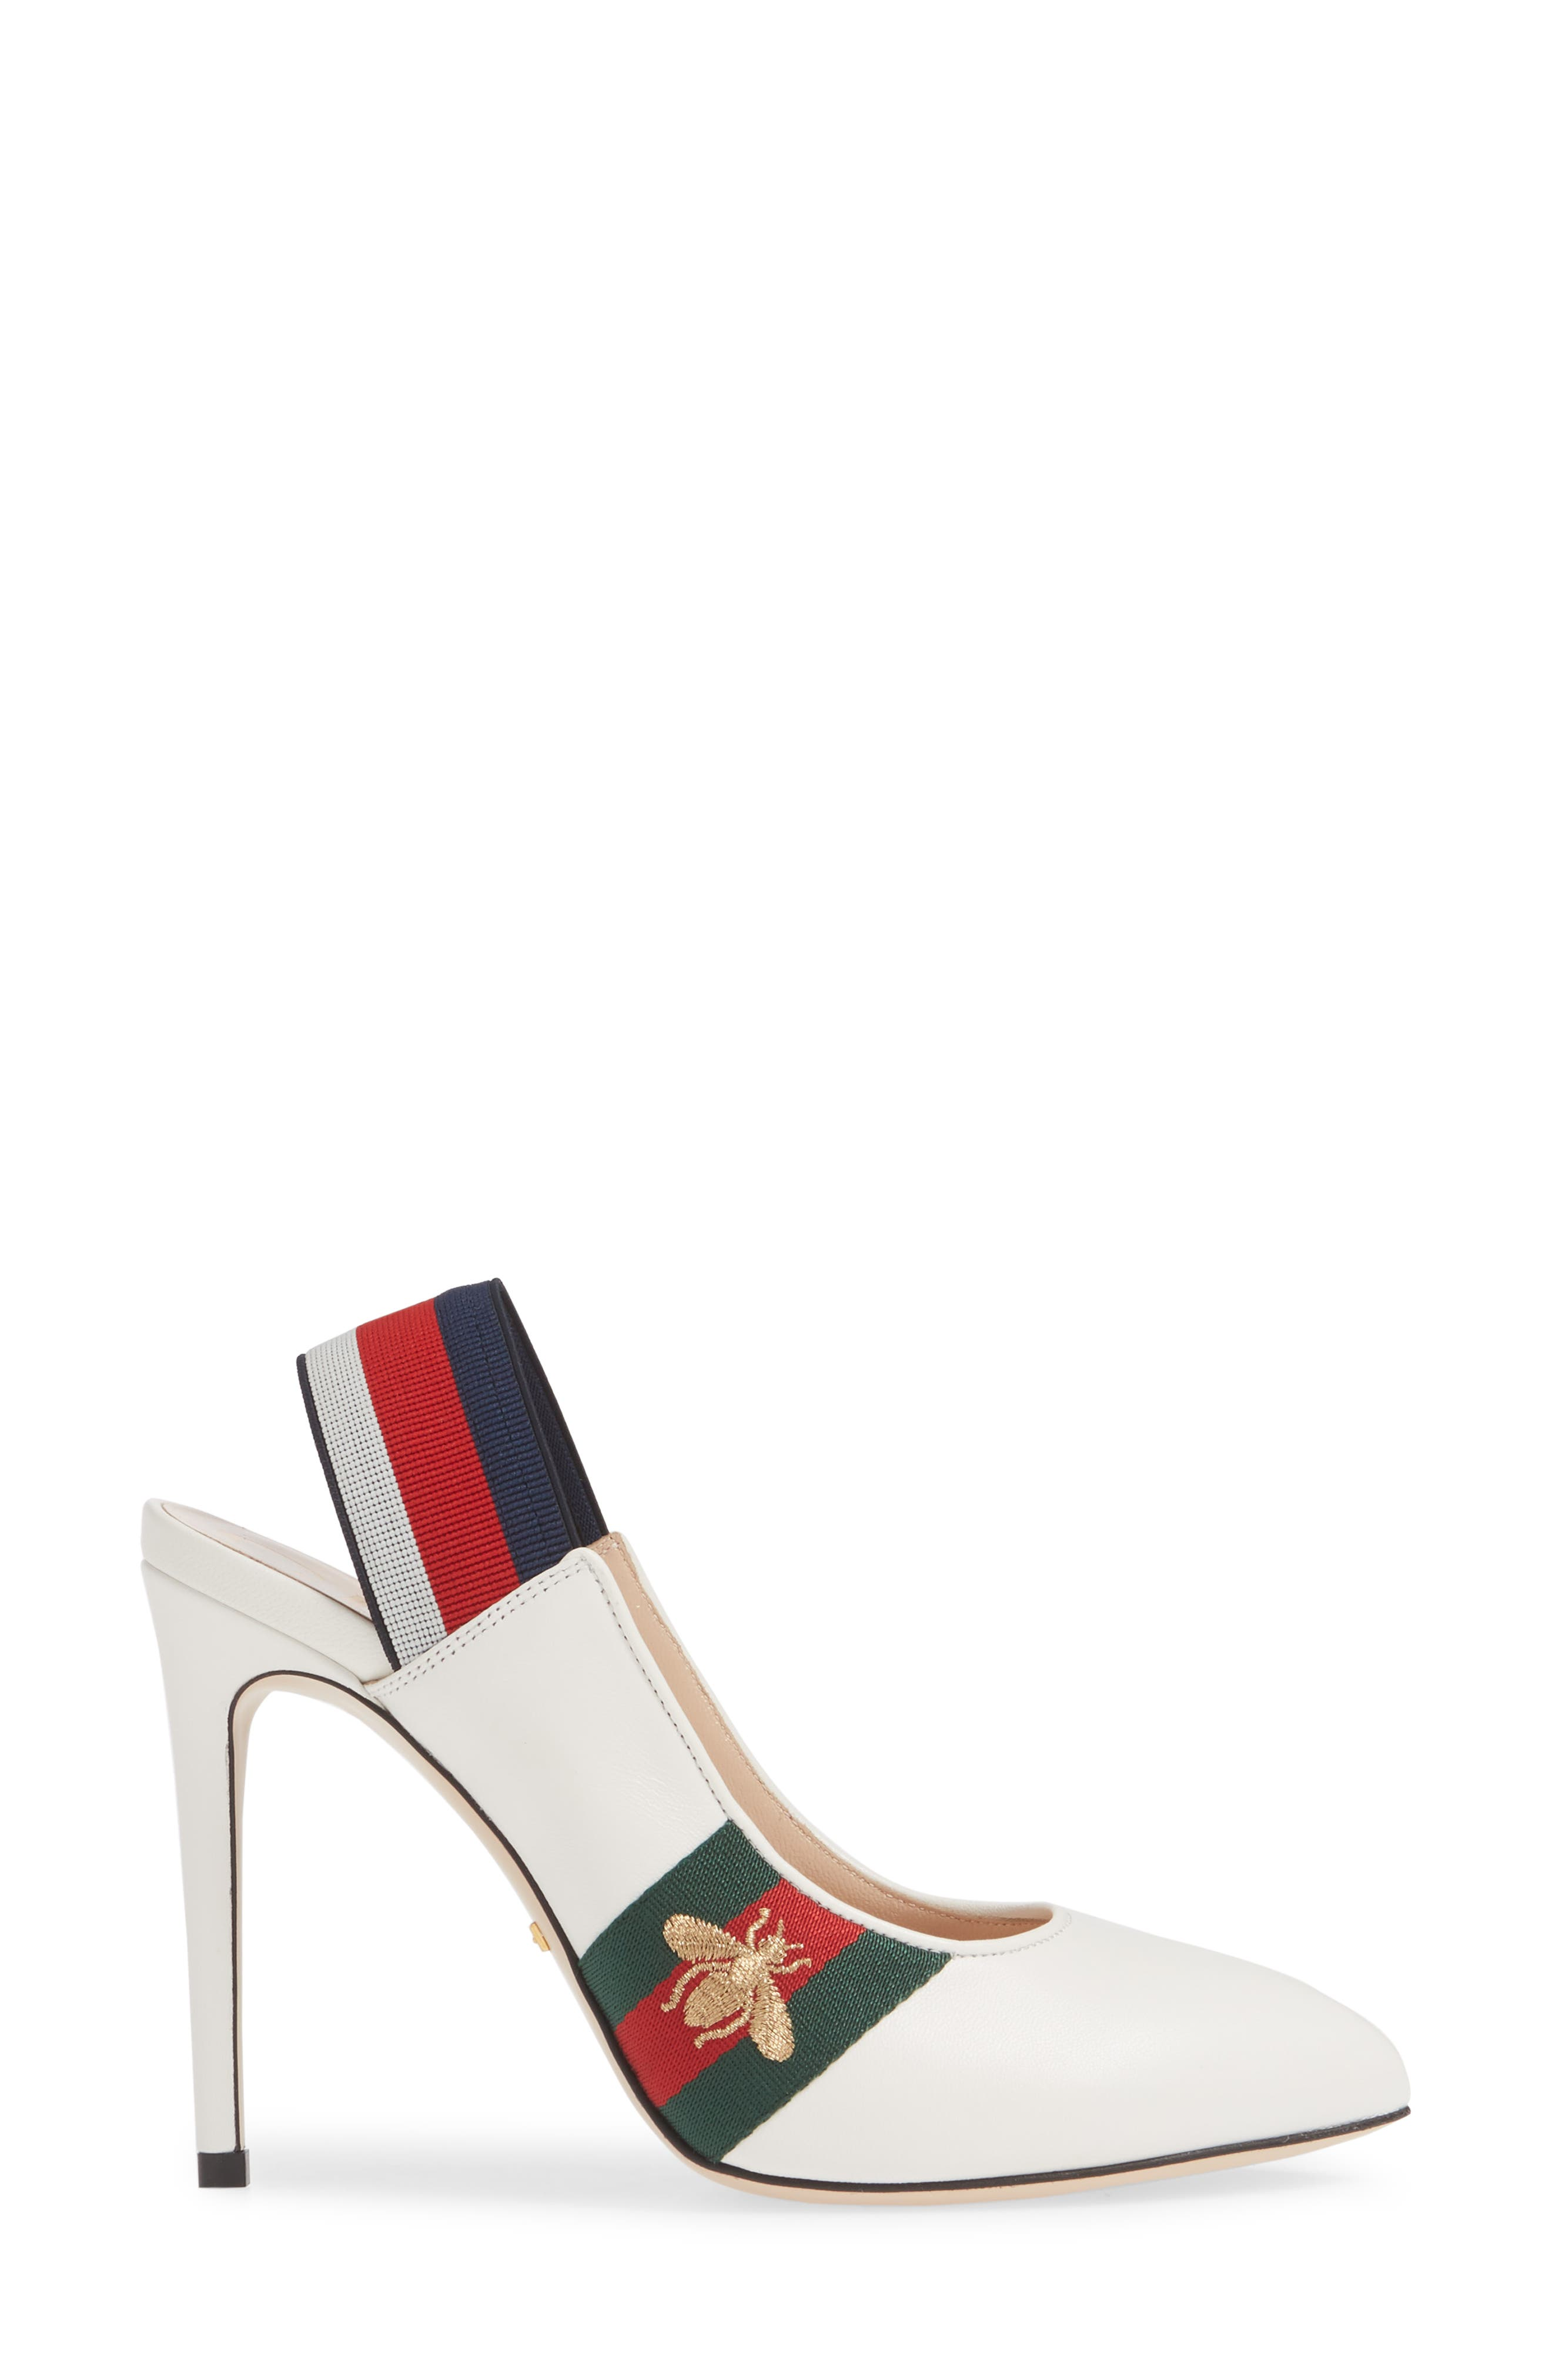 GUCCI, Sylvie Bee Slingback Pump, Alternate thumbnail 3, color, WHITE/ RED